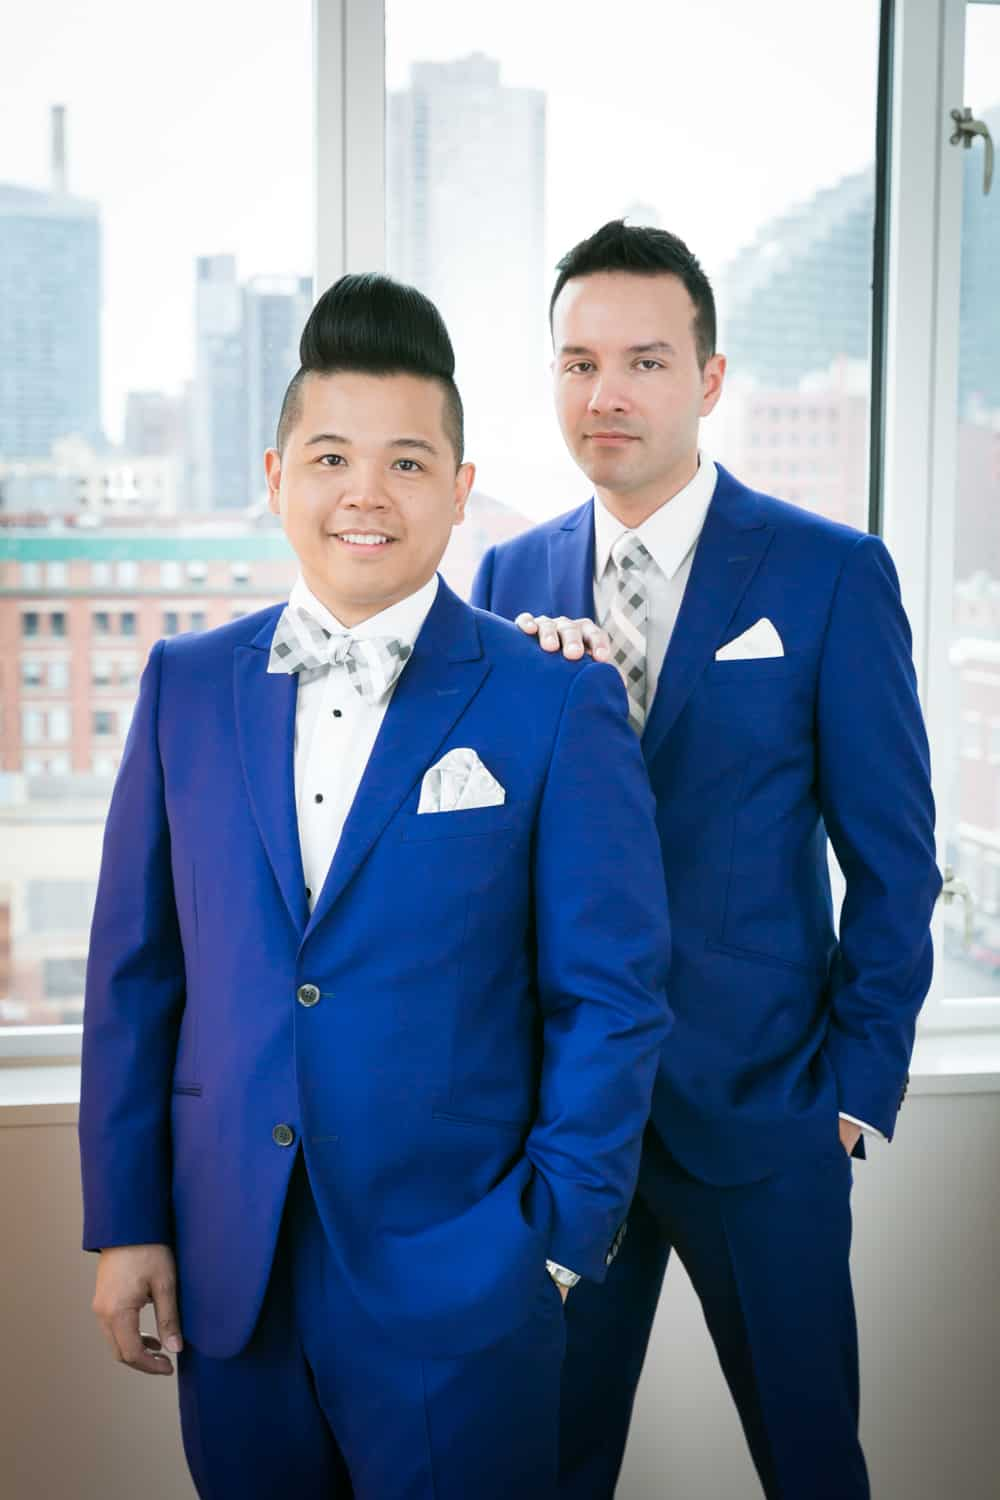 Two grooms in front of window